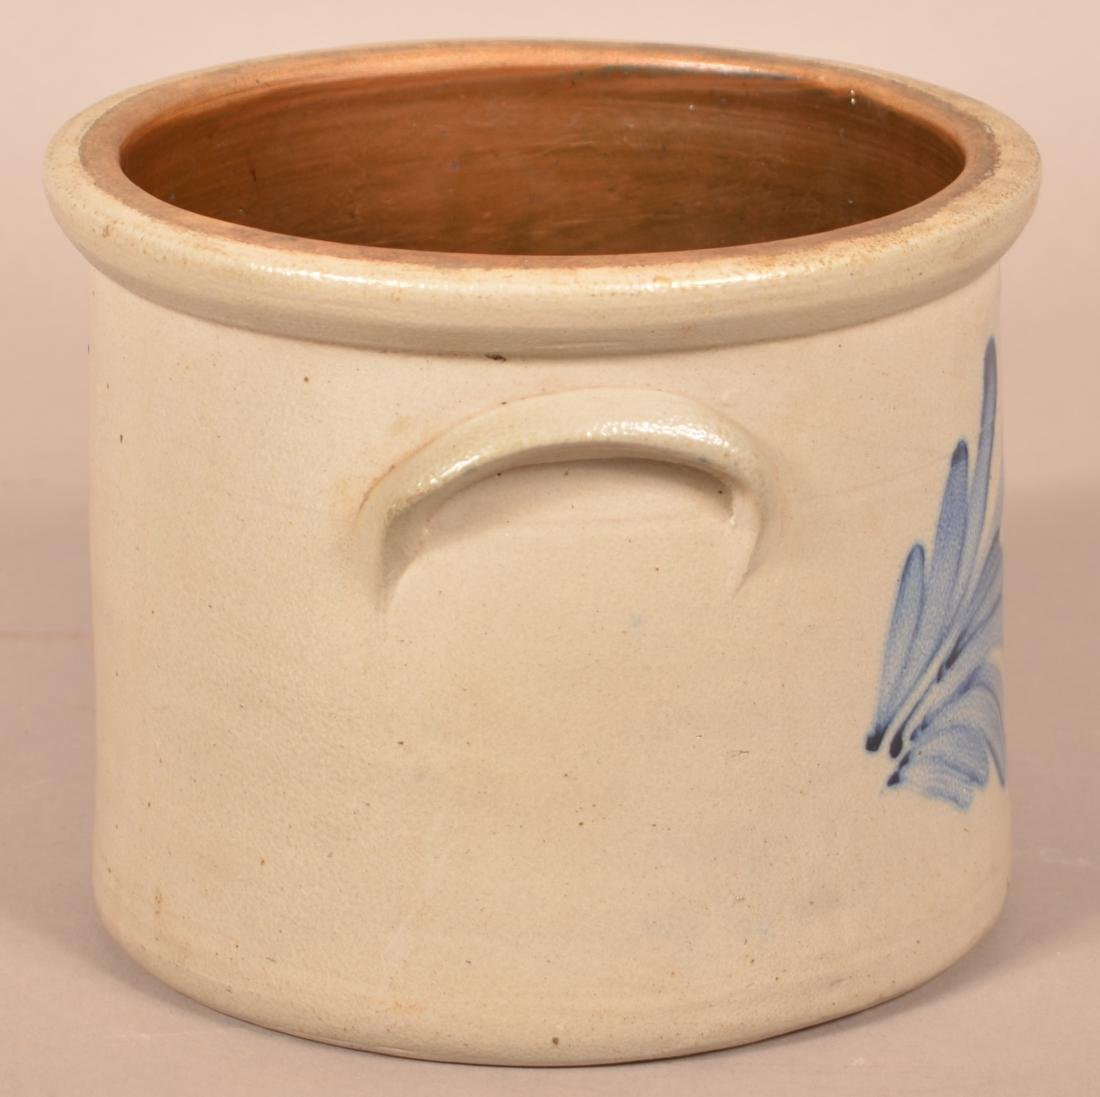 Lewis Jones, Pittston, PA One Gallon Stoneware Crock. - 3